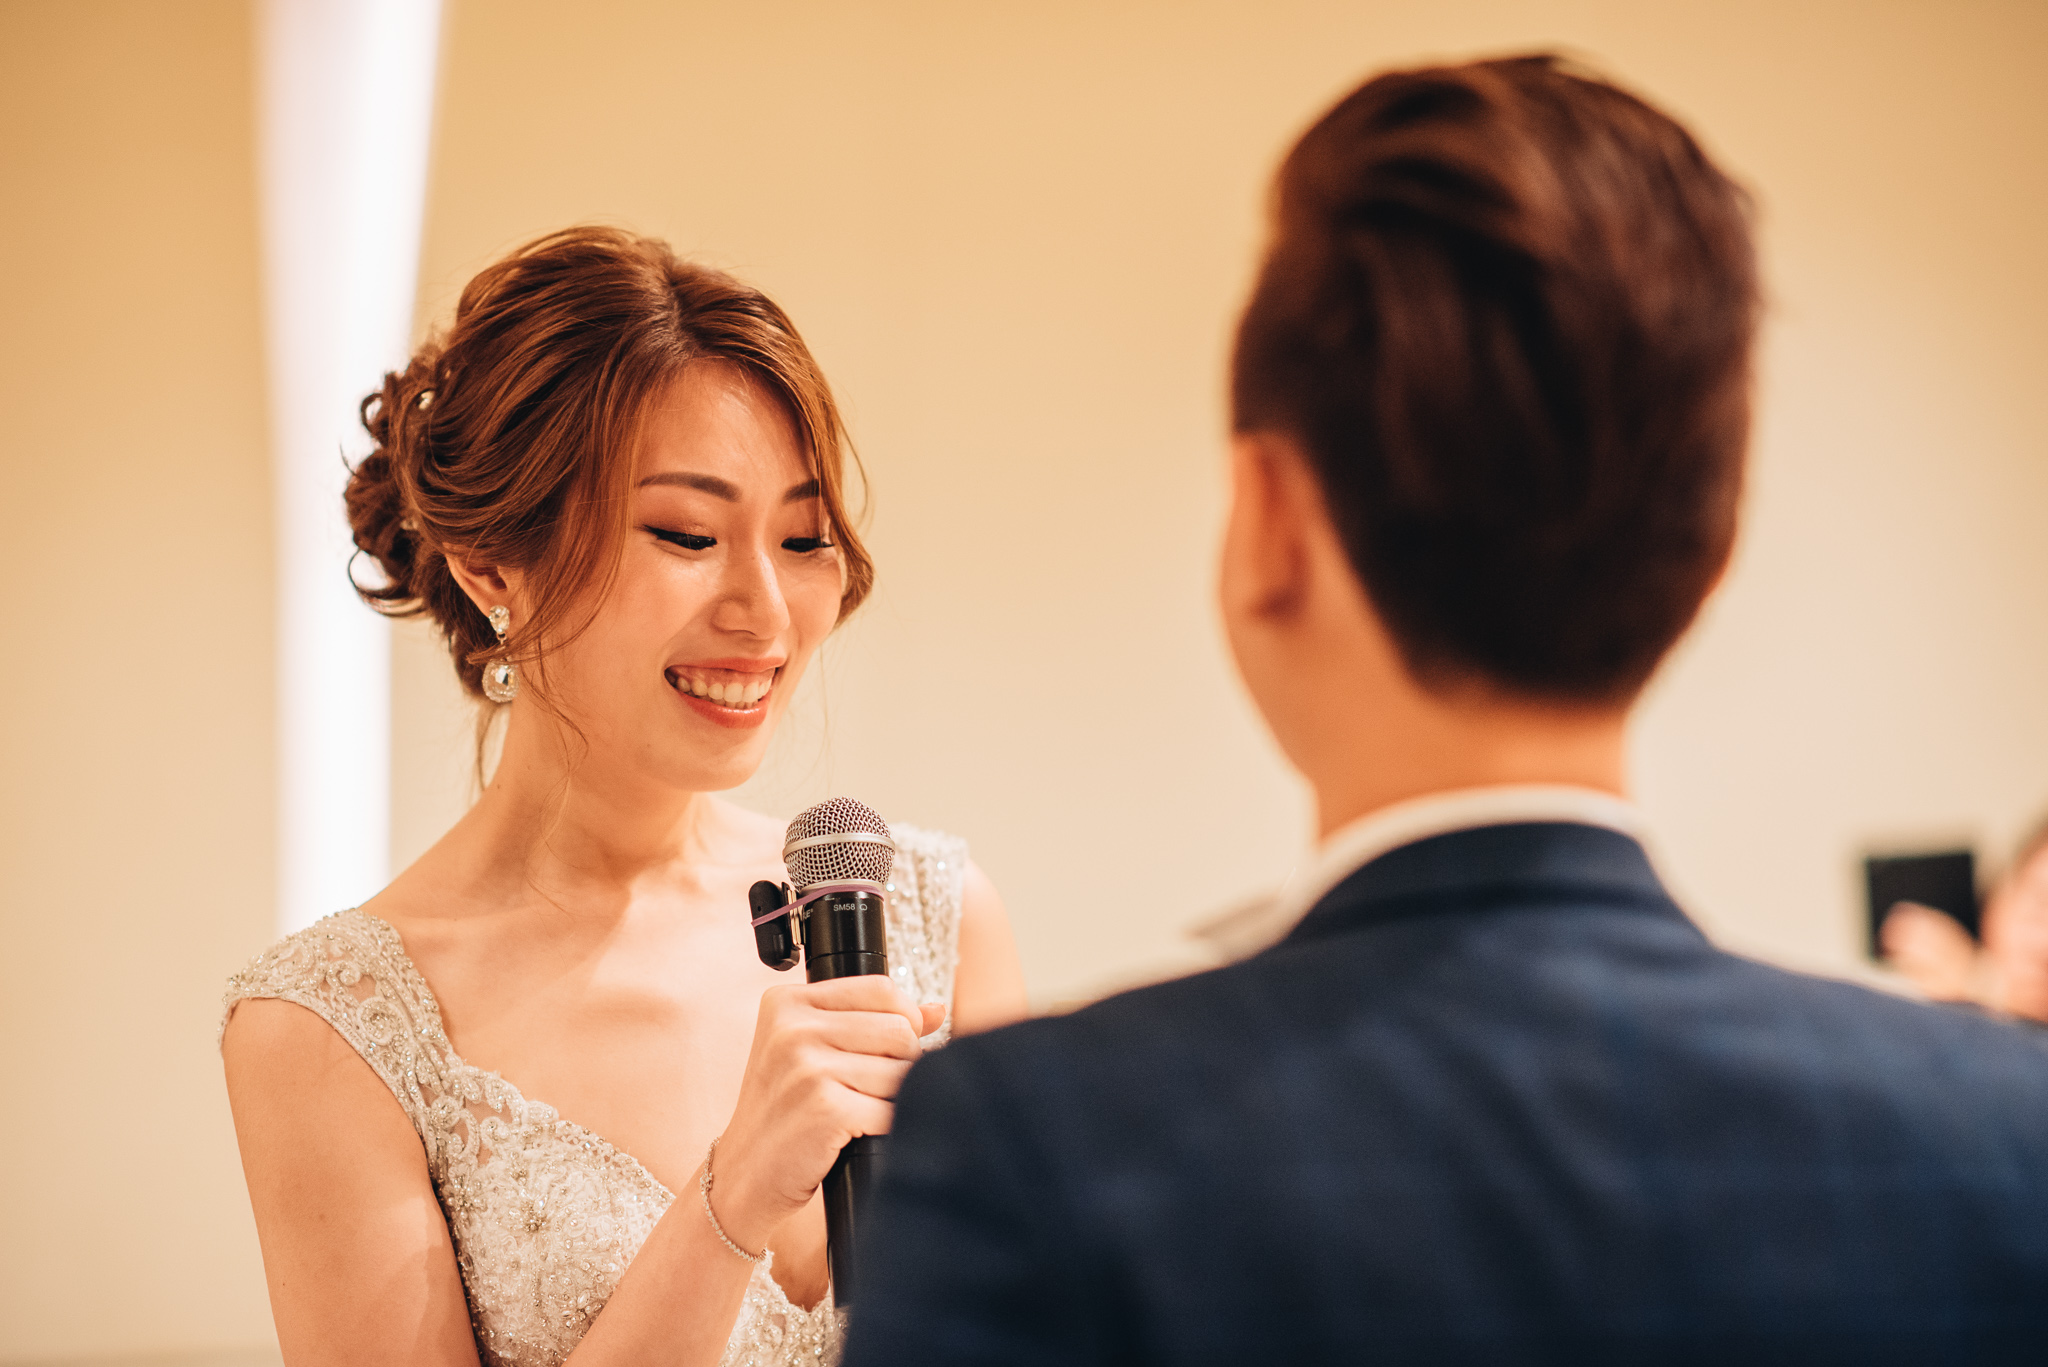 Cindy & Kevin Wedding Day Highlights (resized for sharing) - 157.jpg